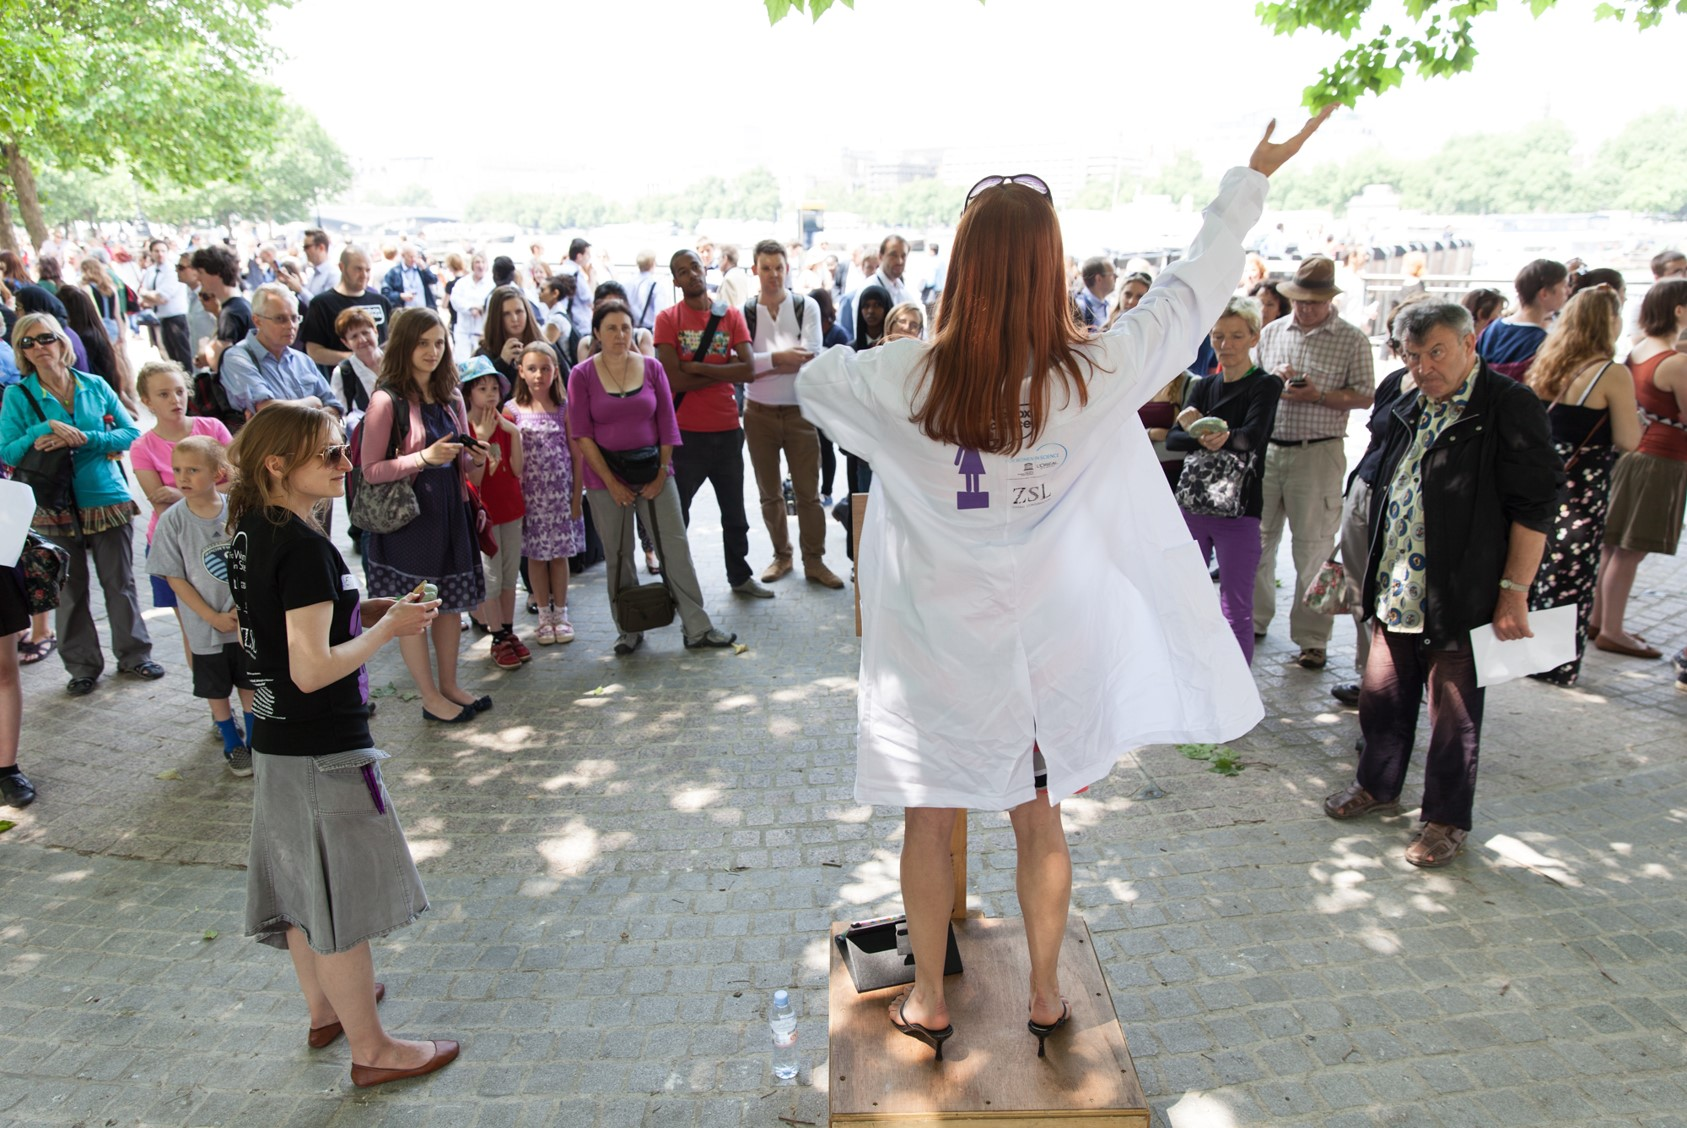 Scientist speaking to a crowd from a soapbox